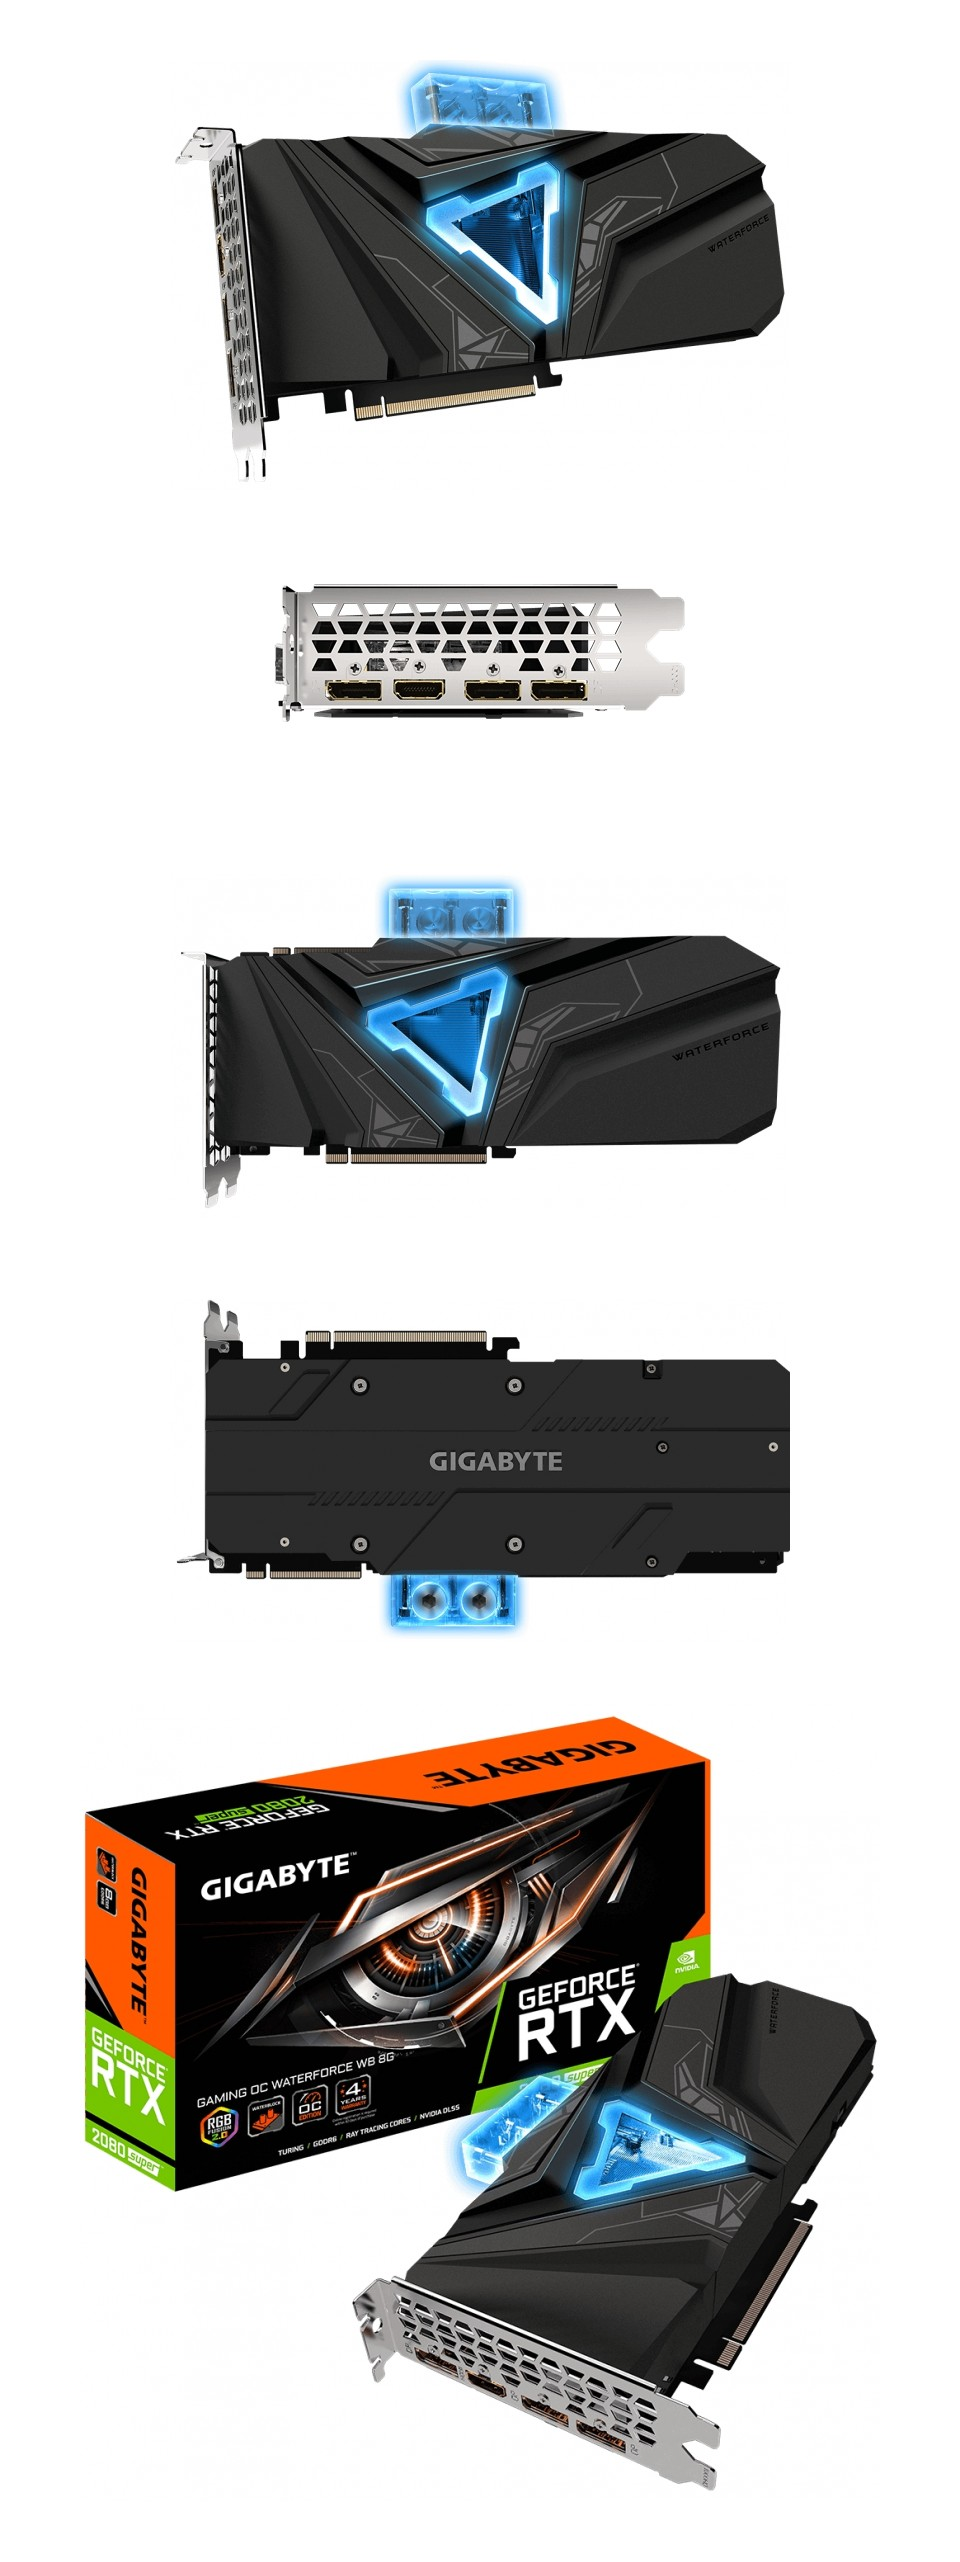 Gigabyte GeForce RTX 2080 Super Gaming OC Waterforce WB 8G product